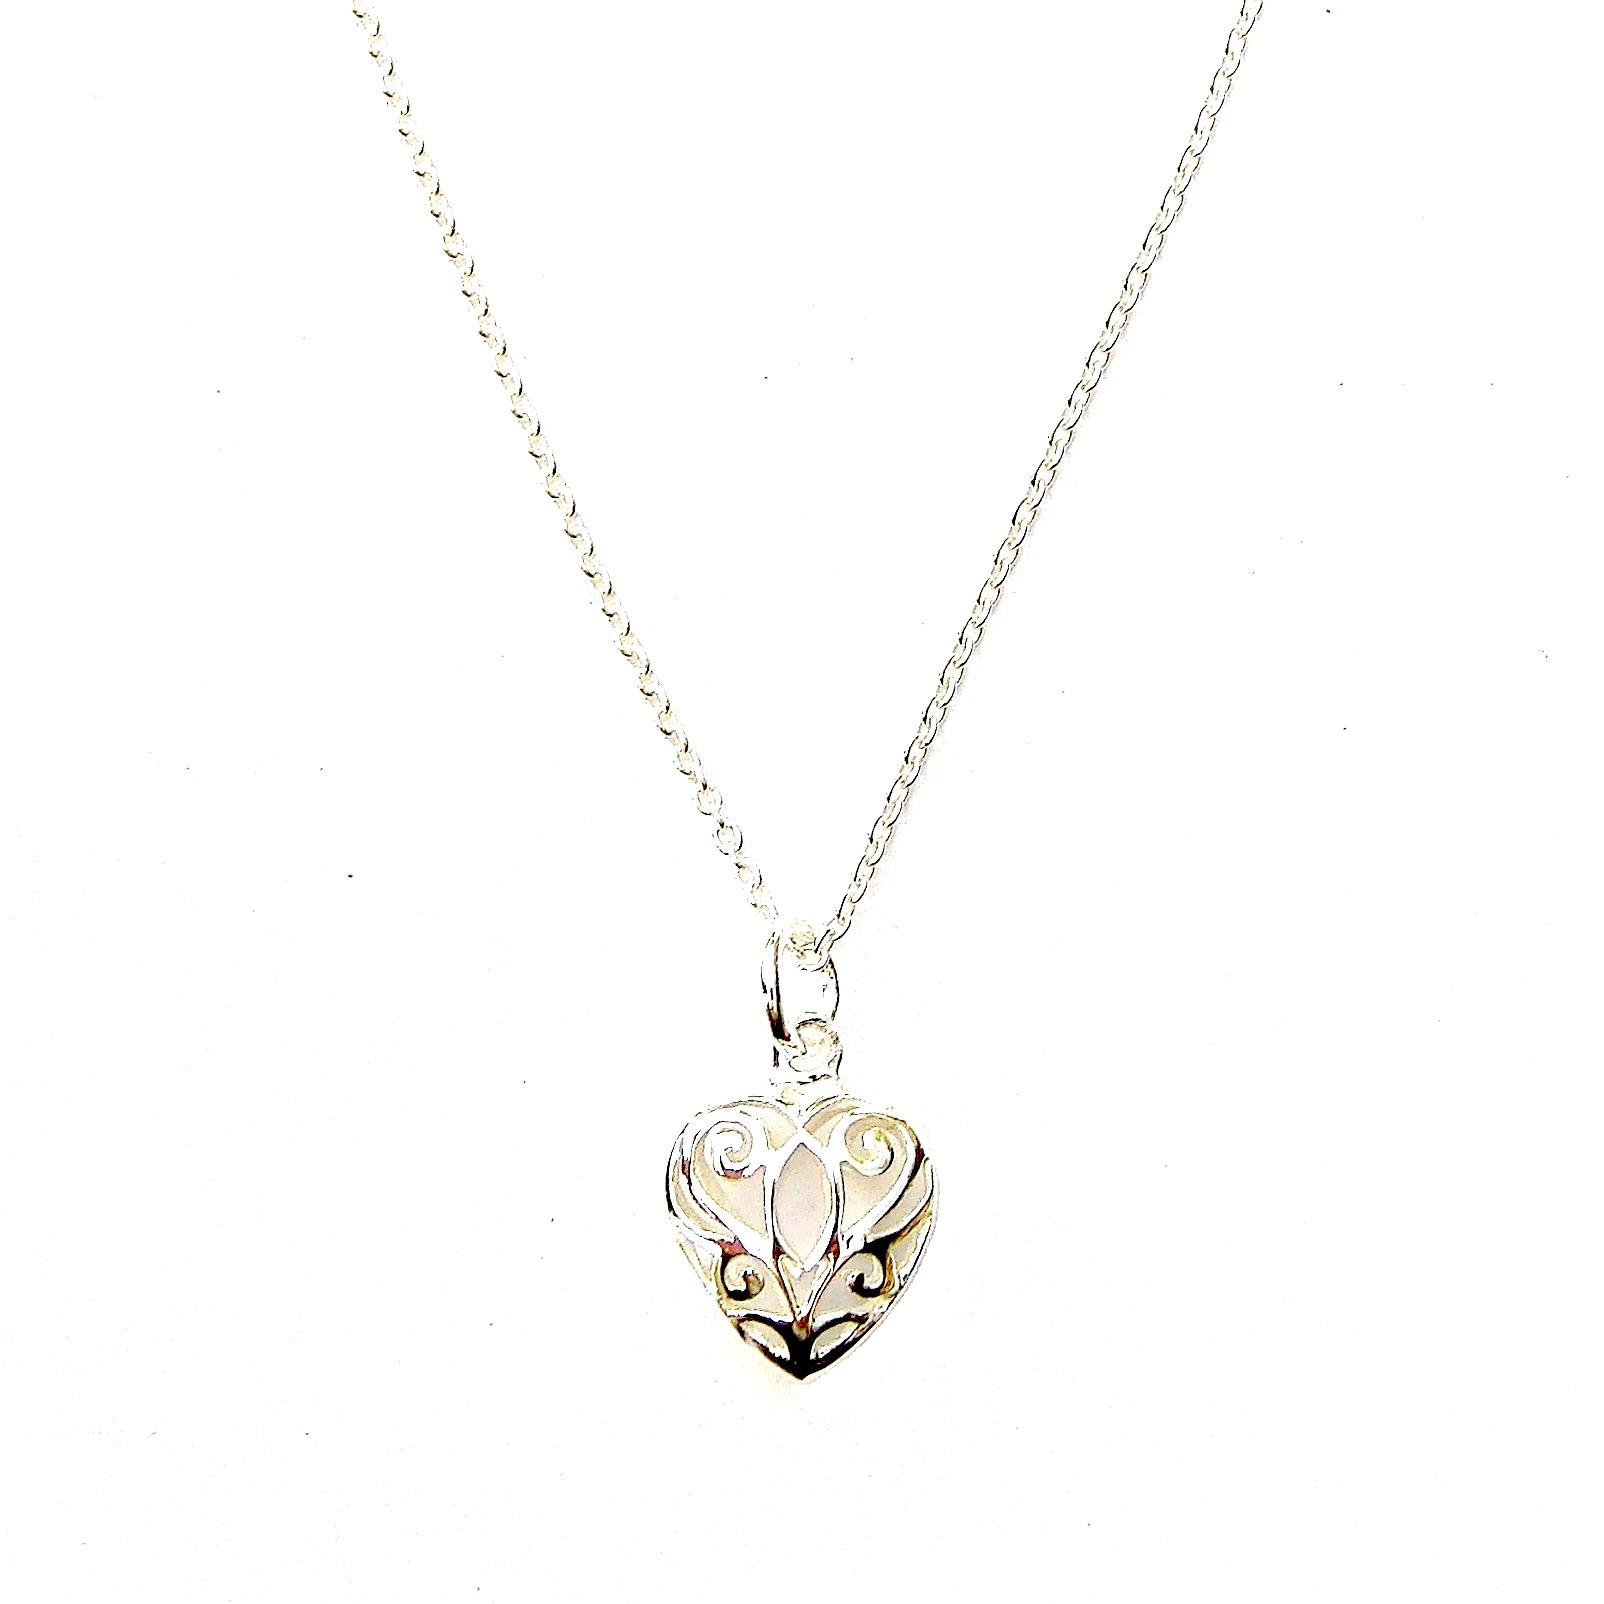 Filigree Puff Heart Necklace